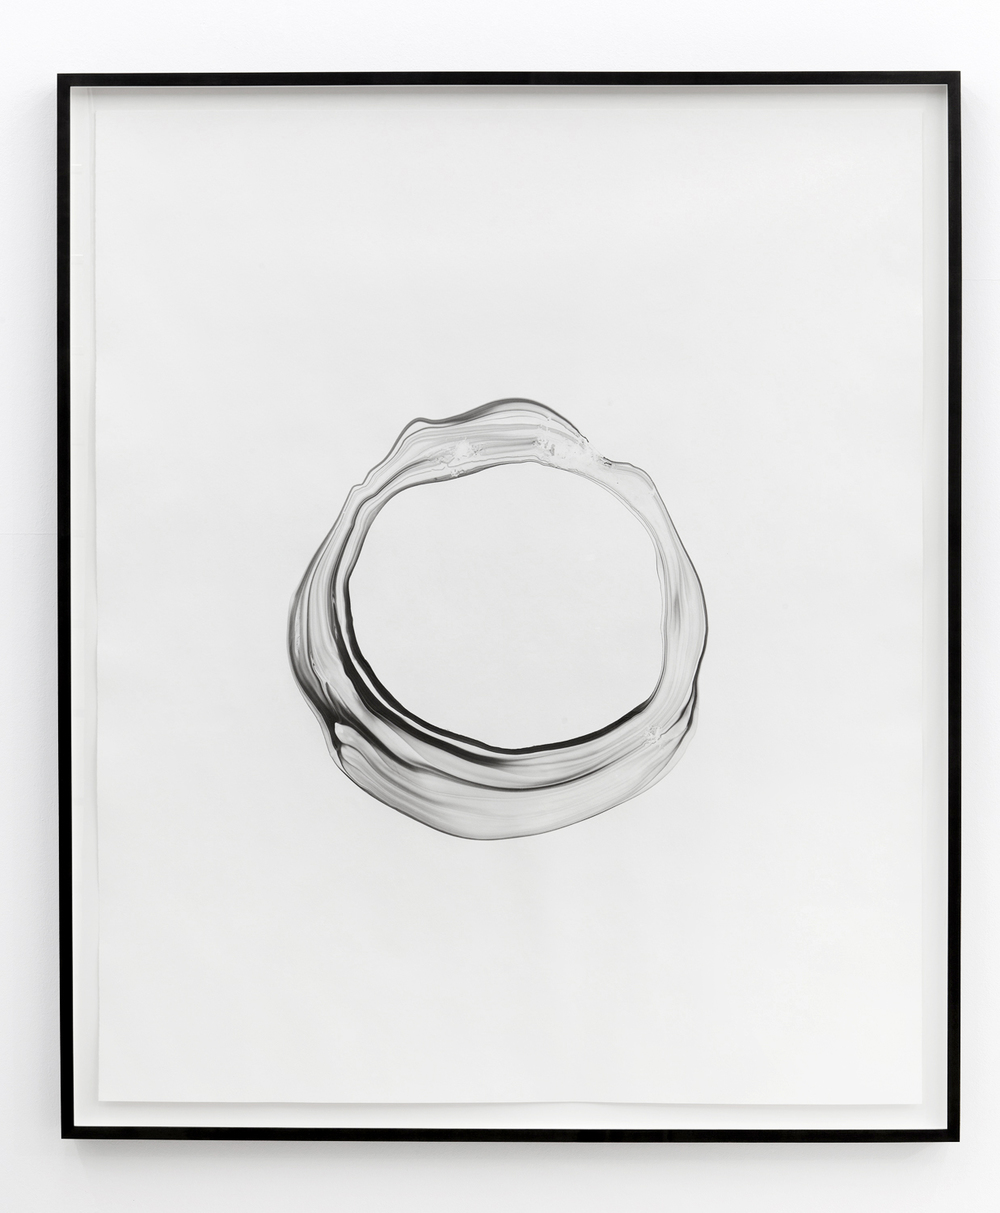 Corona lll , 2012, ink on paper, 151 x 125,5cm